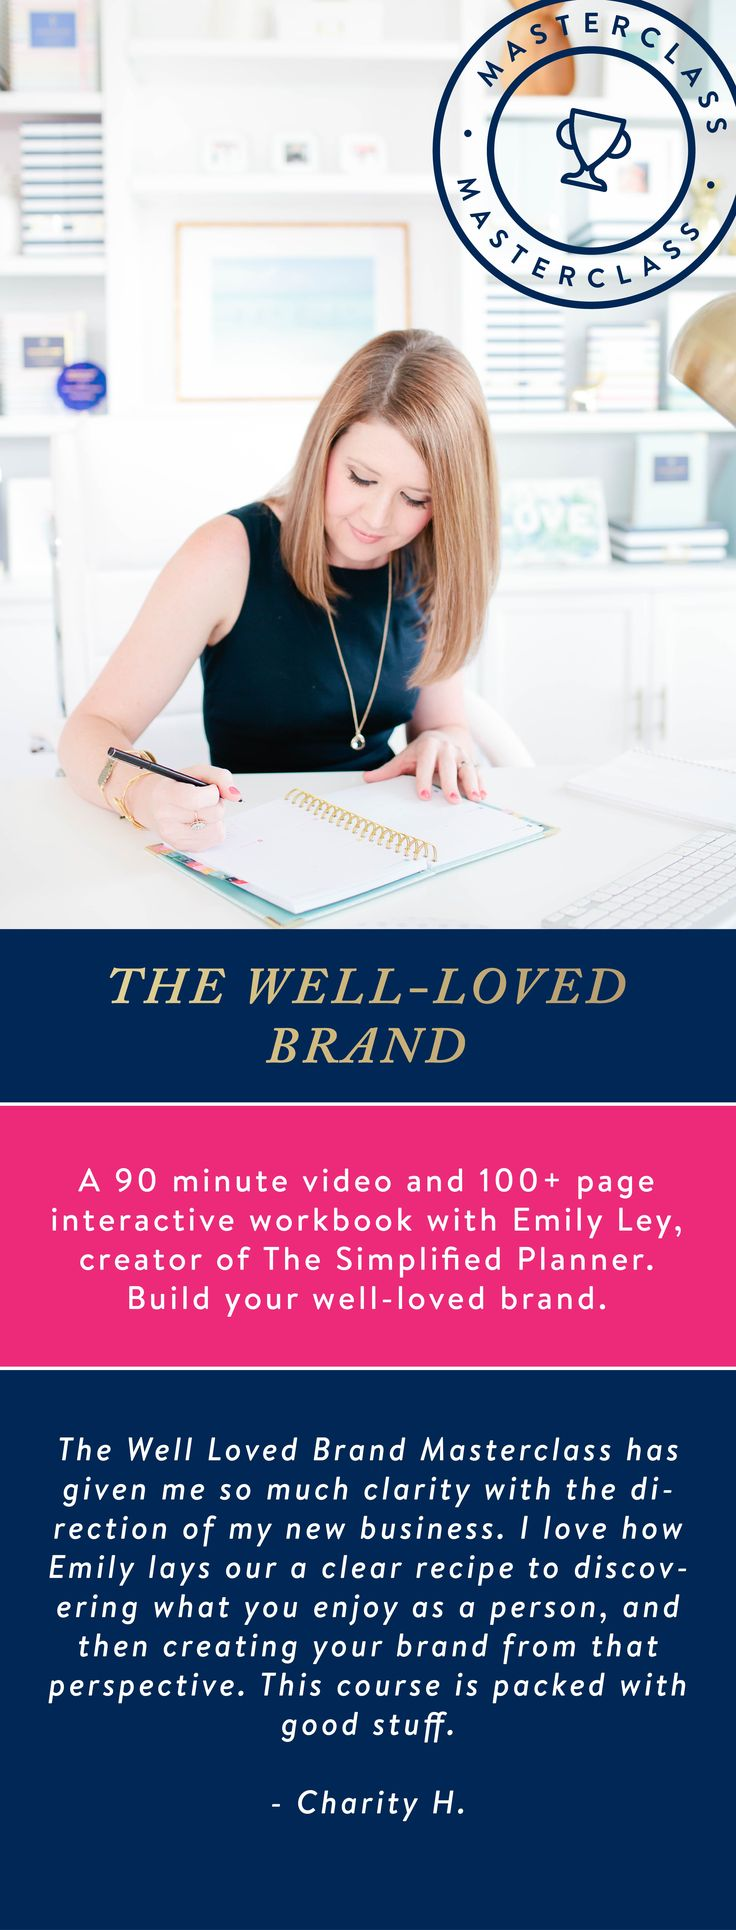 The ultimate masterclass for creatives and business owners. 90 minute video + 100+ page workbook by Emily Ley. $280.